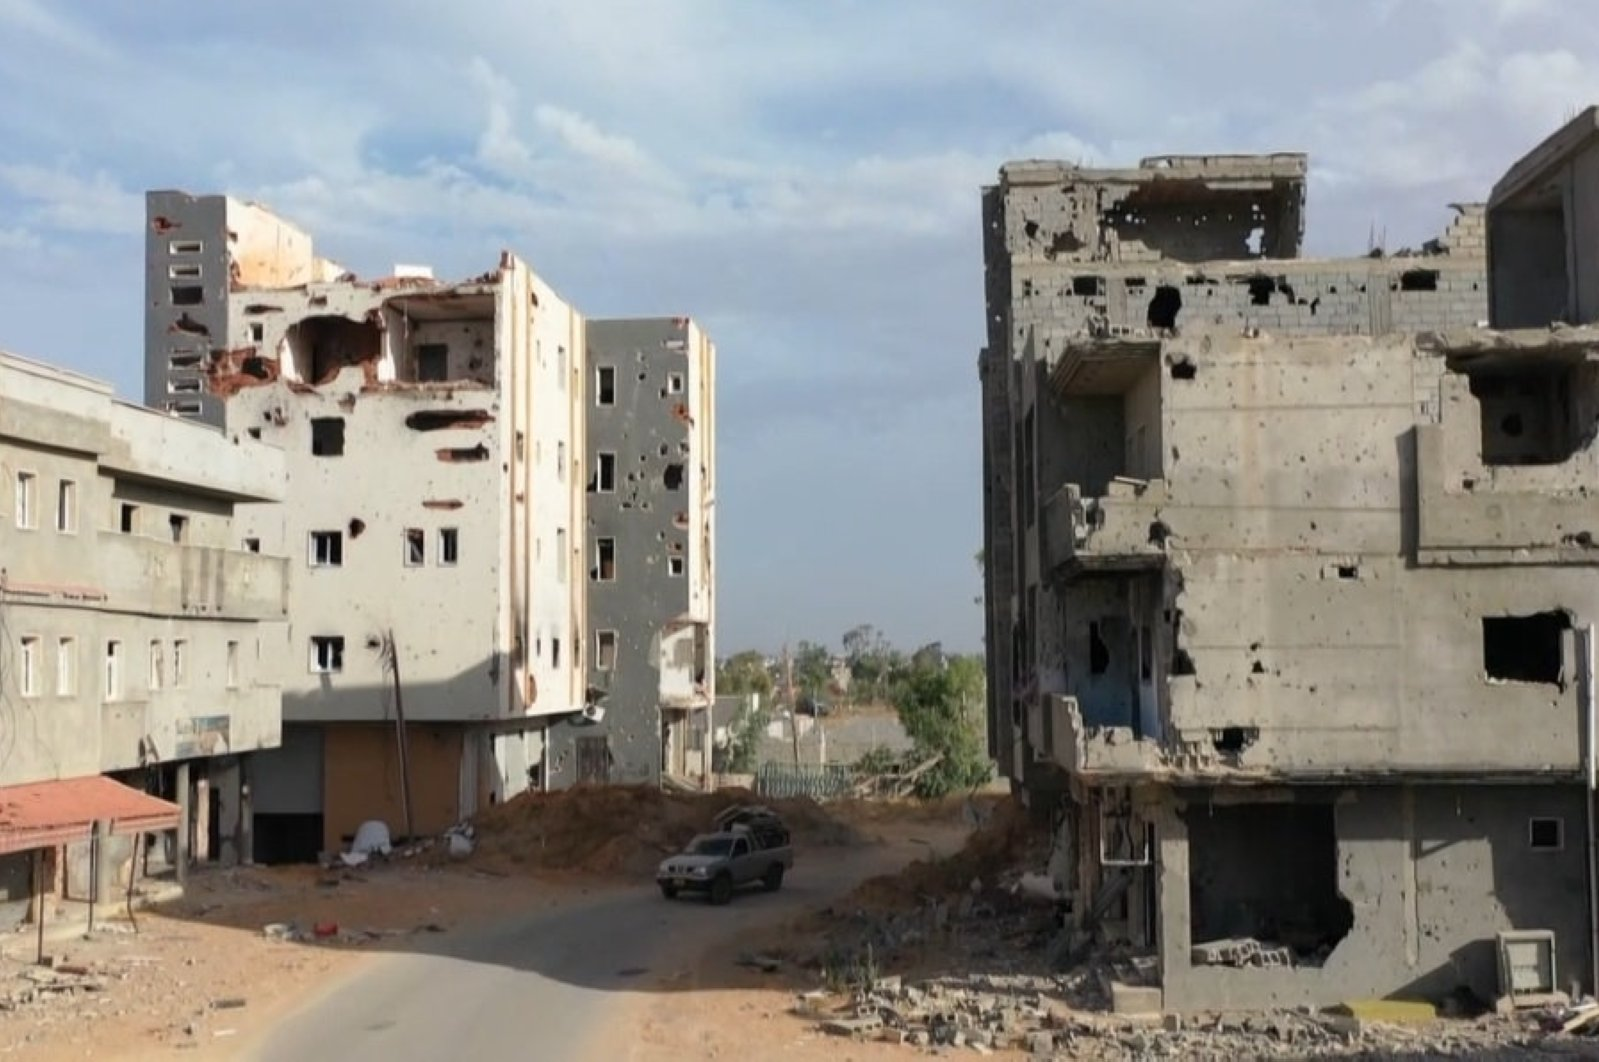 Buildings damaged during the 14 months of fighting between the U.N.-recognized Government of National Accord (GNA) and putschist Gen. Khalifa Haftar are seen in a southern neighborhood of the capital Tripoli, Libya, June 22, 2020. (AA Photo)